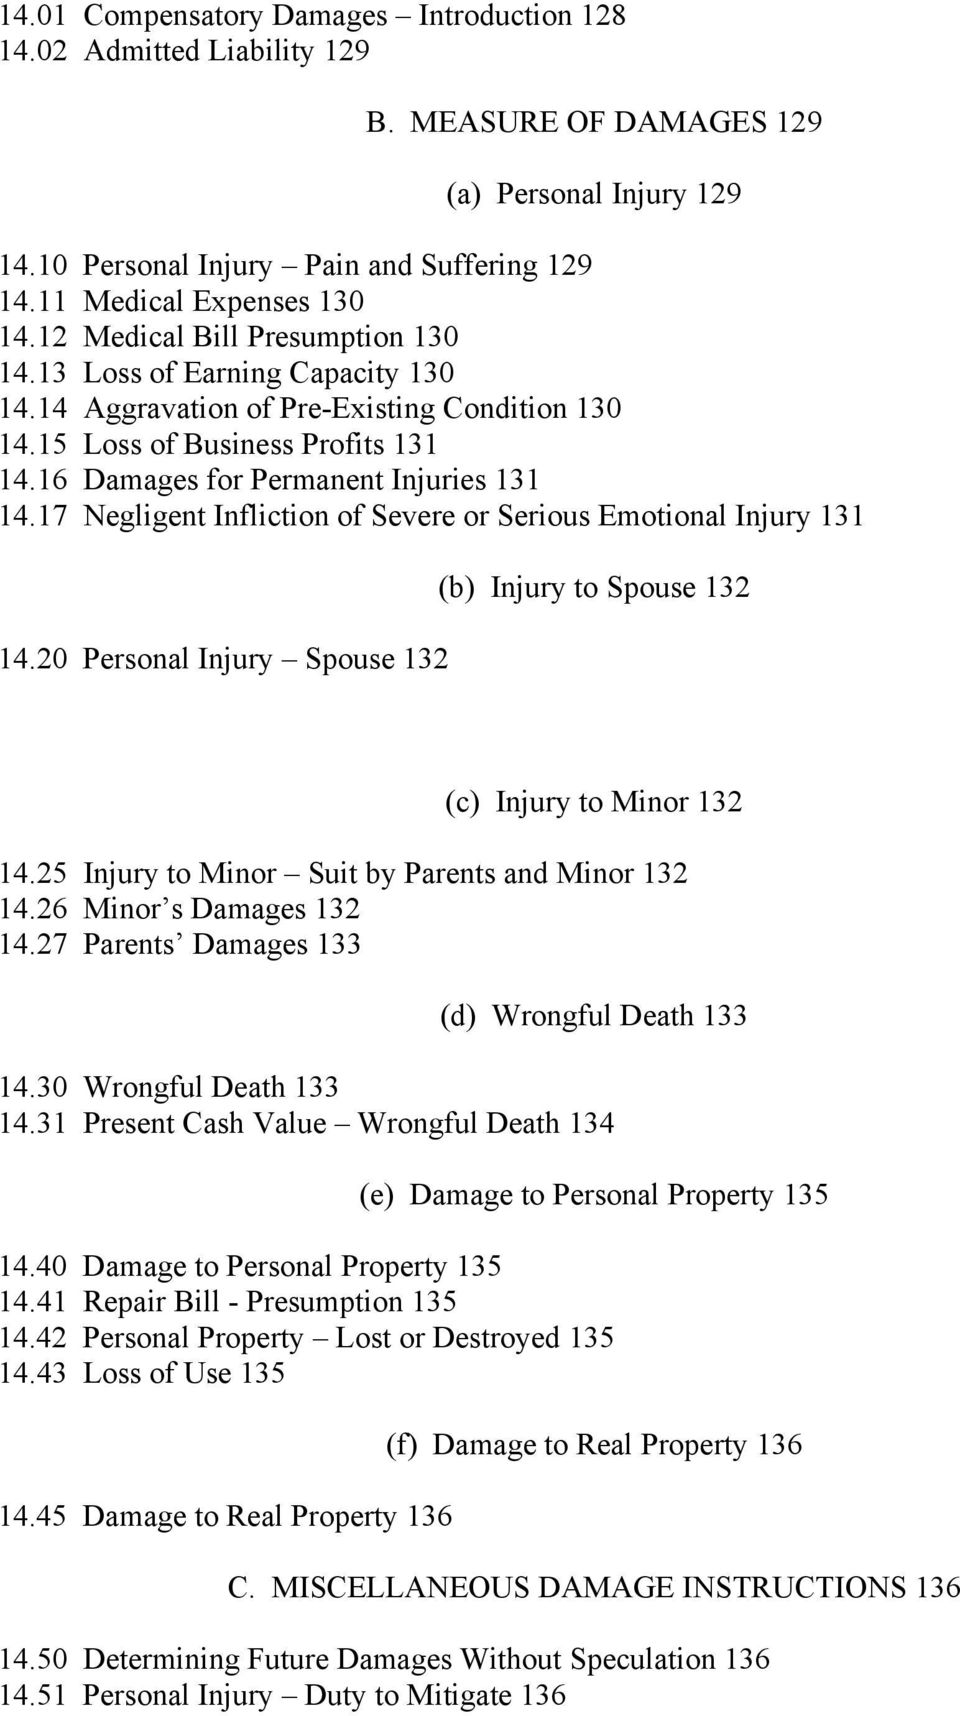 17 Negligent Infliction of Severe or Serious Emotional Injury 131 14.20 Personal Injury Spouse 132 (b) Injury to Spouse 132 (c) Injury to Minor 132 14.